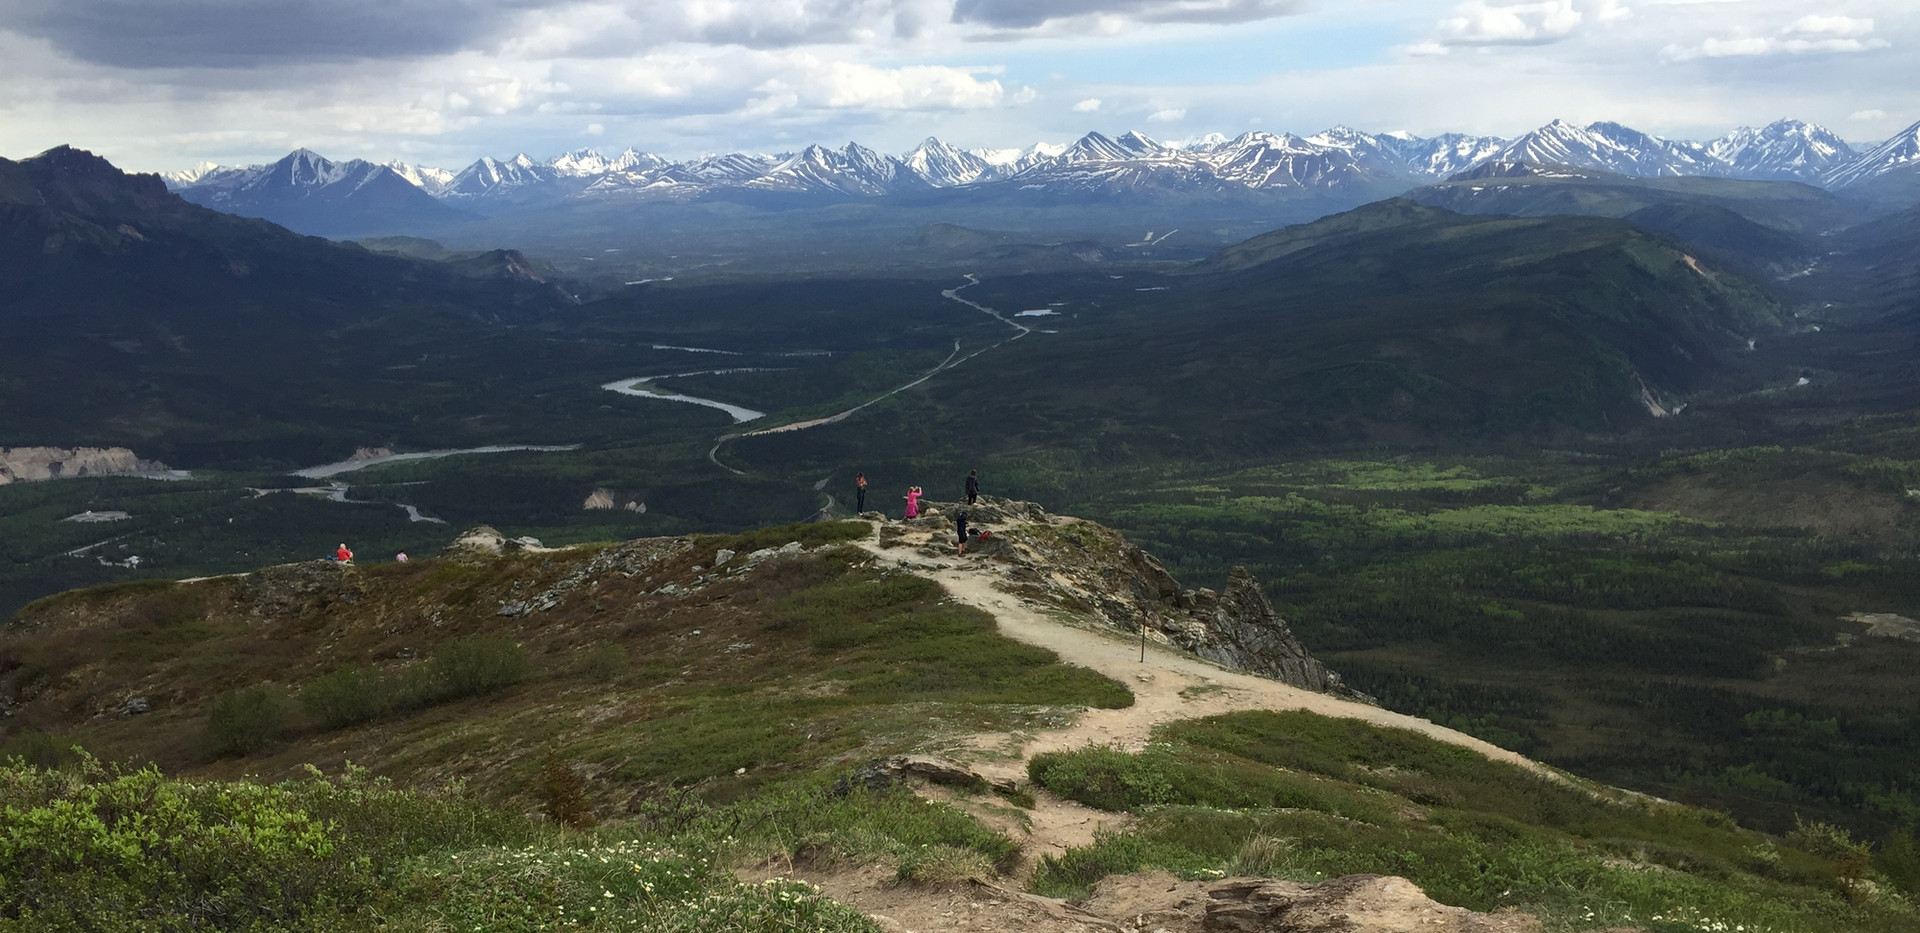 Hiking - Denali National Park, AK